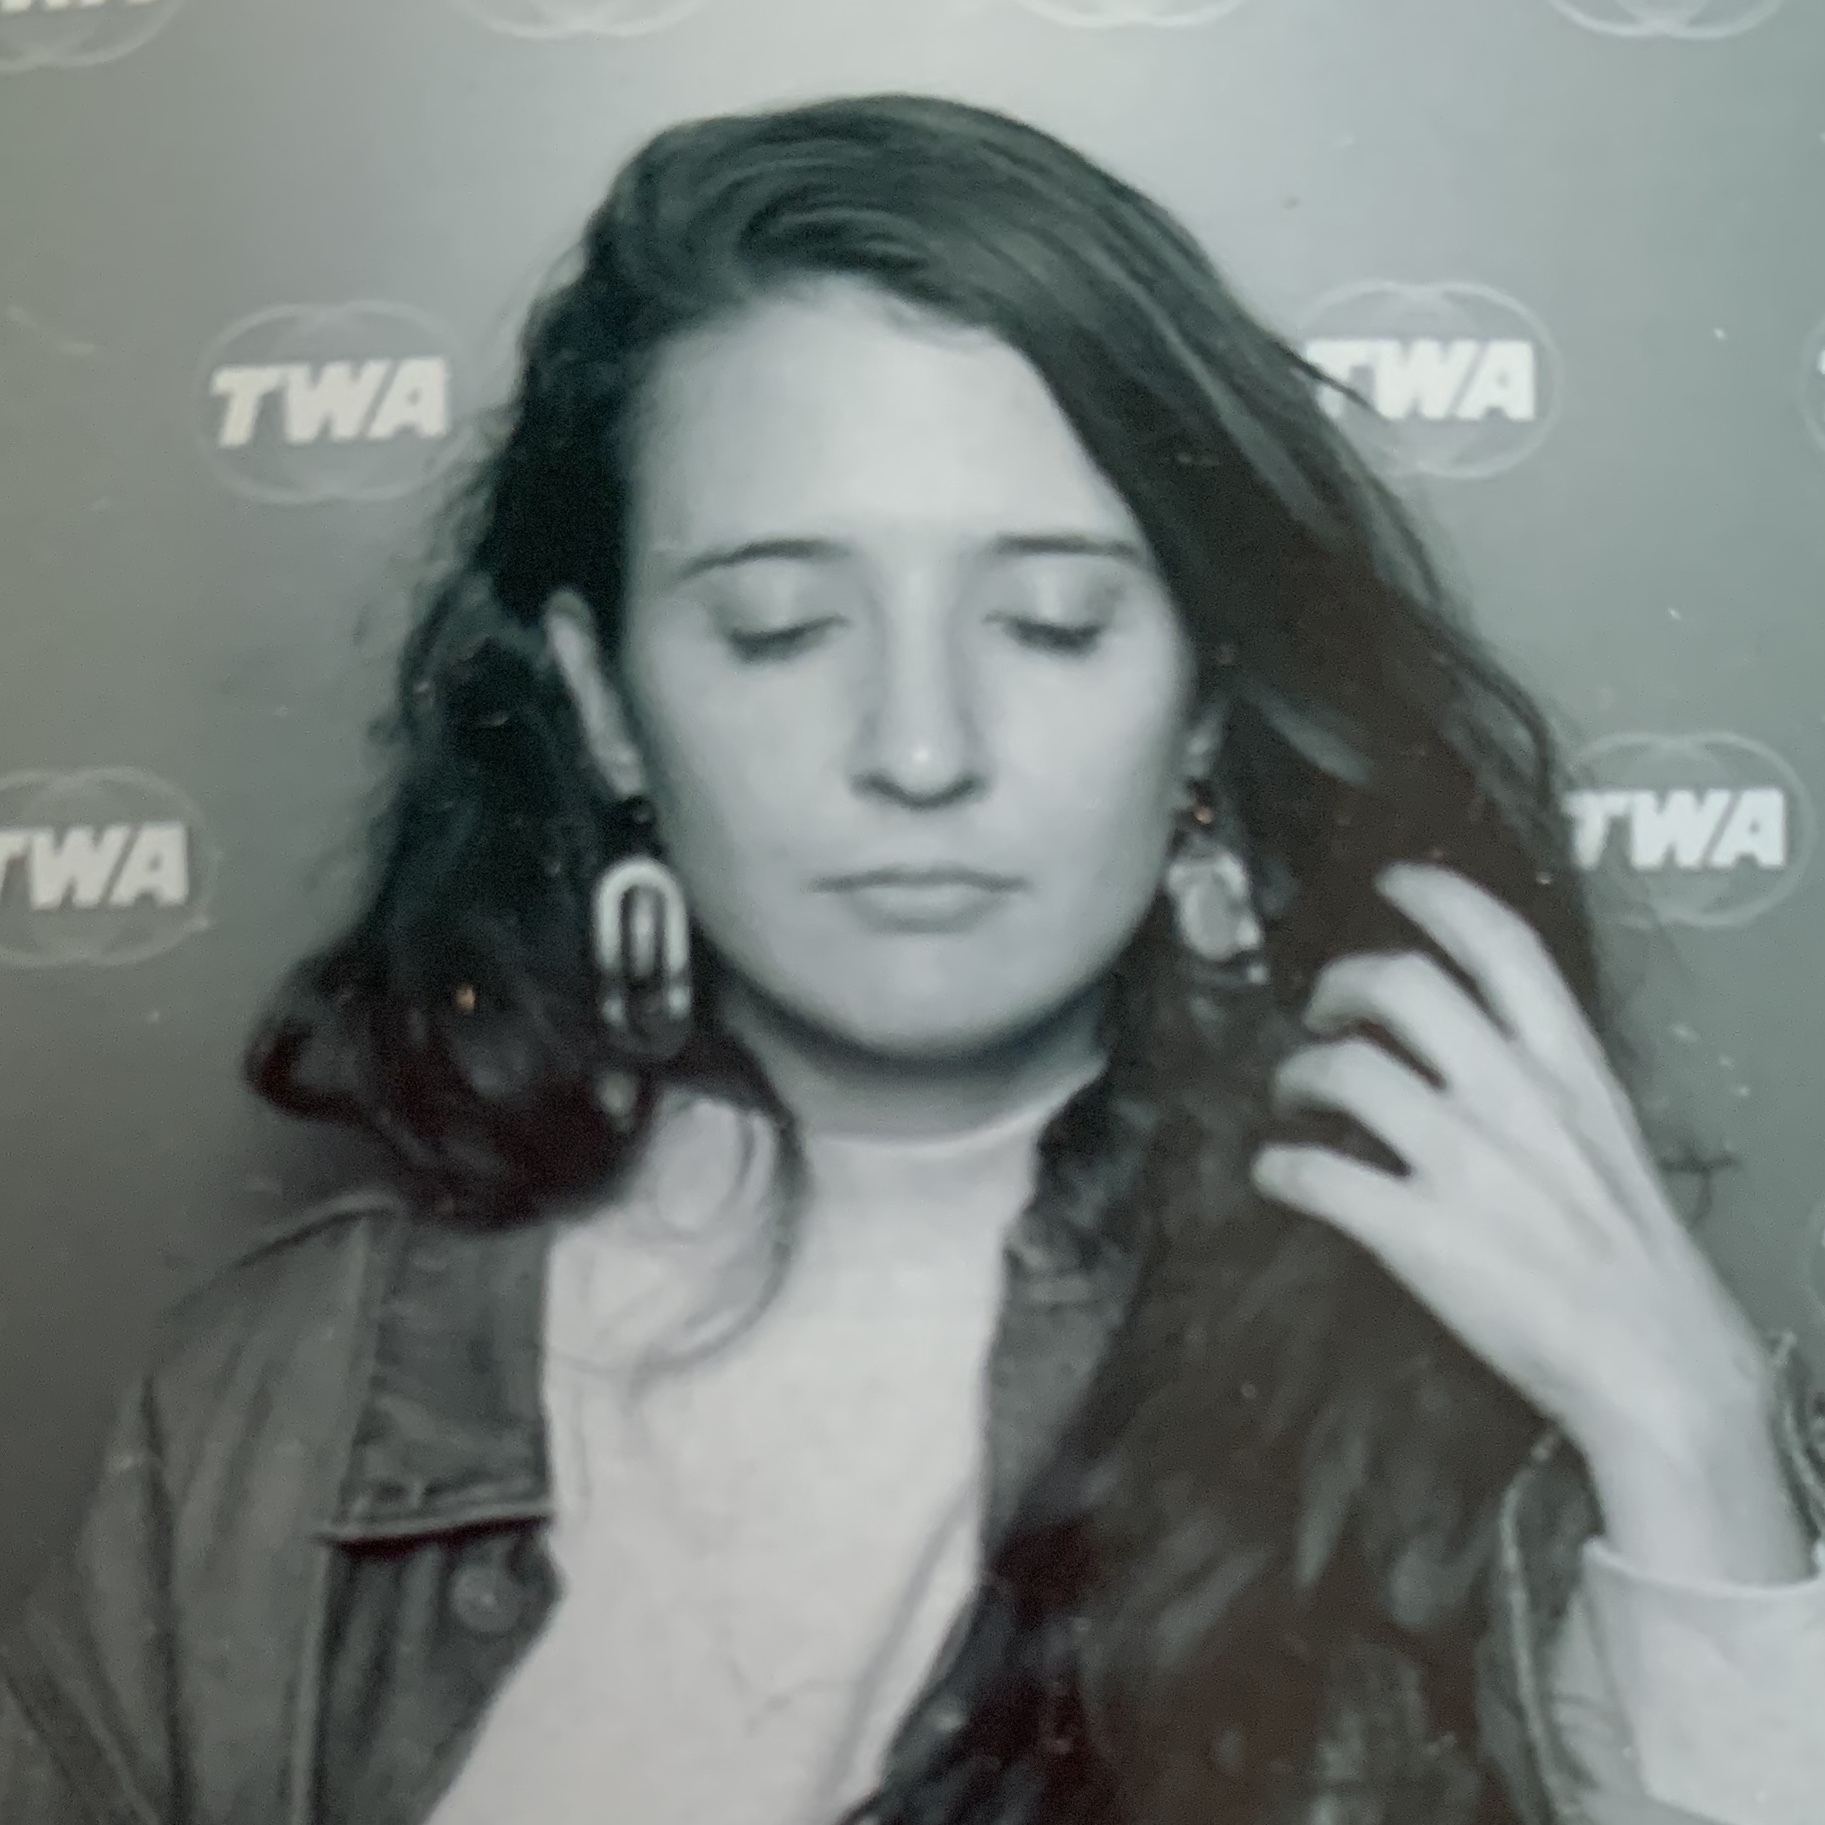 A black and white portrait of Kaitlyn A. Kramer. Her eyes are closed and her left hand brushes back her long dark hair. She's wearing a white mockneck sweater, a denim jacket, and large earrings.